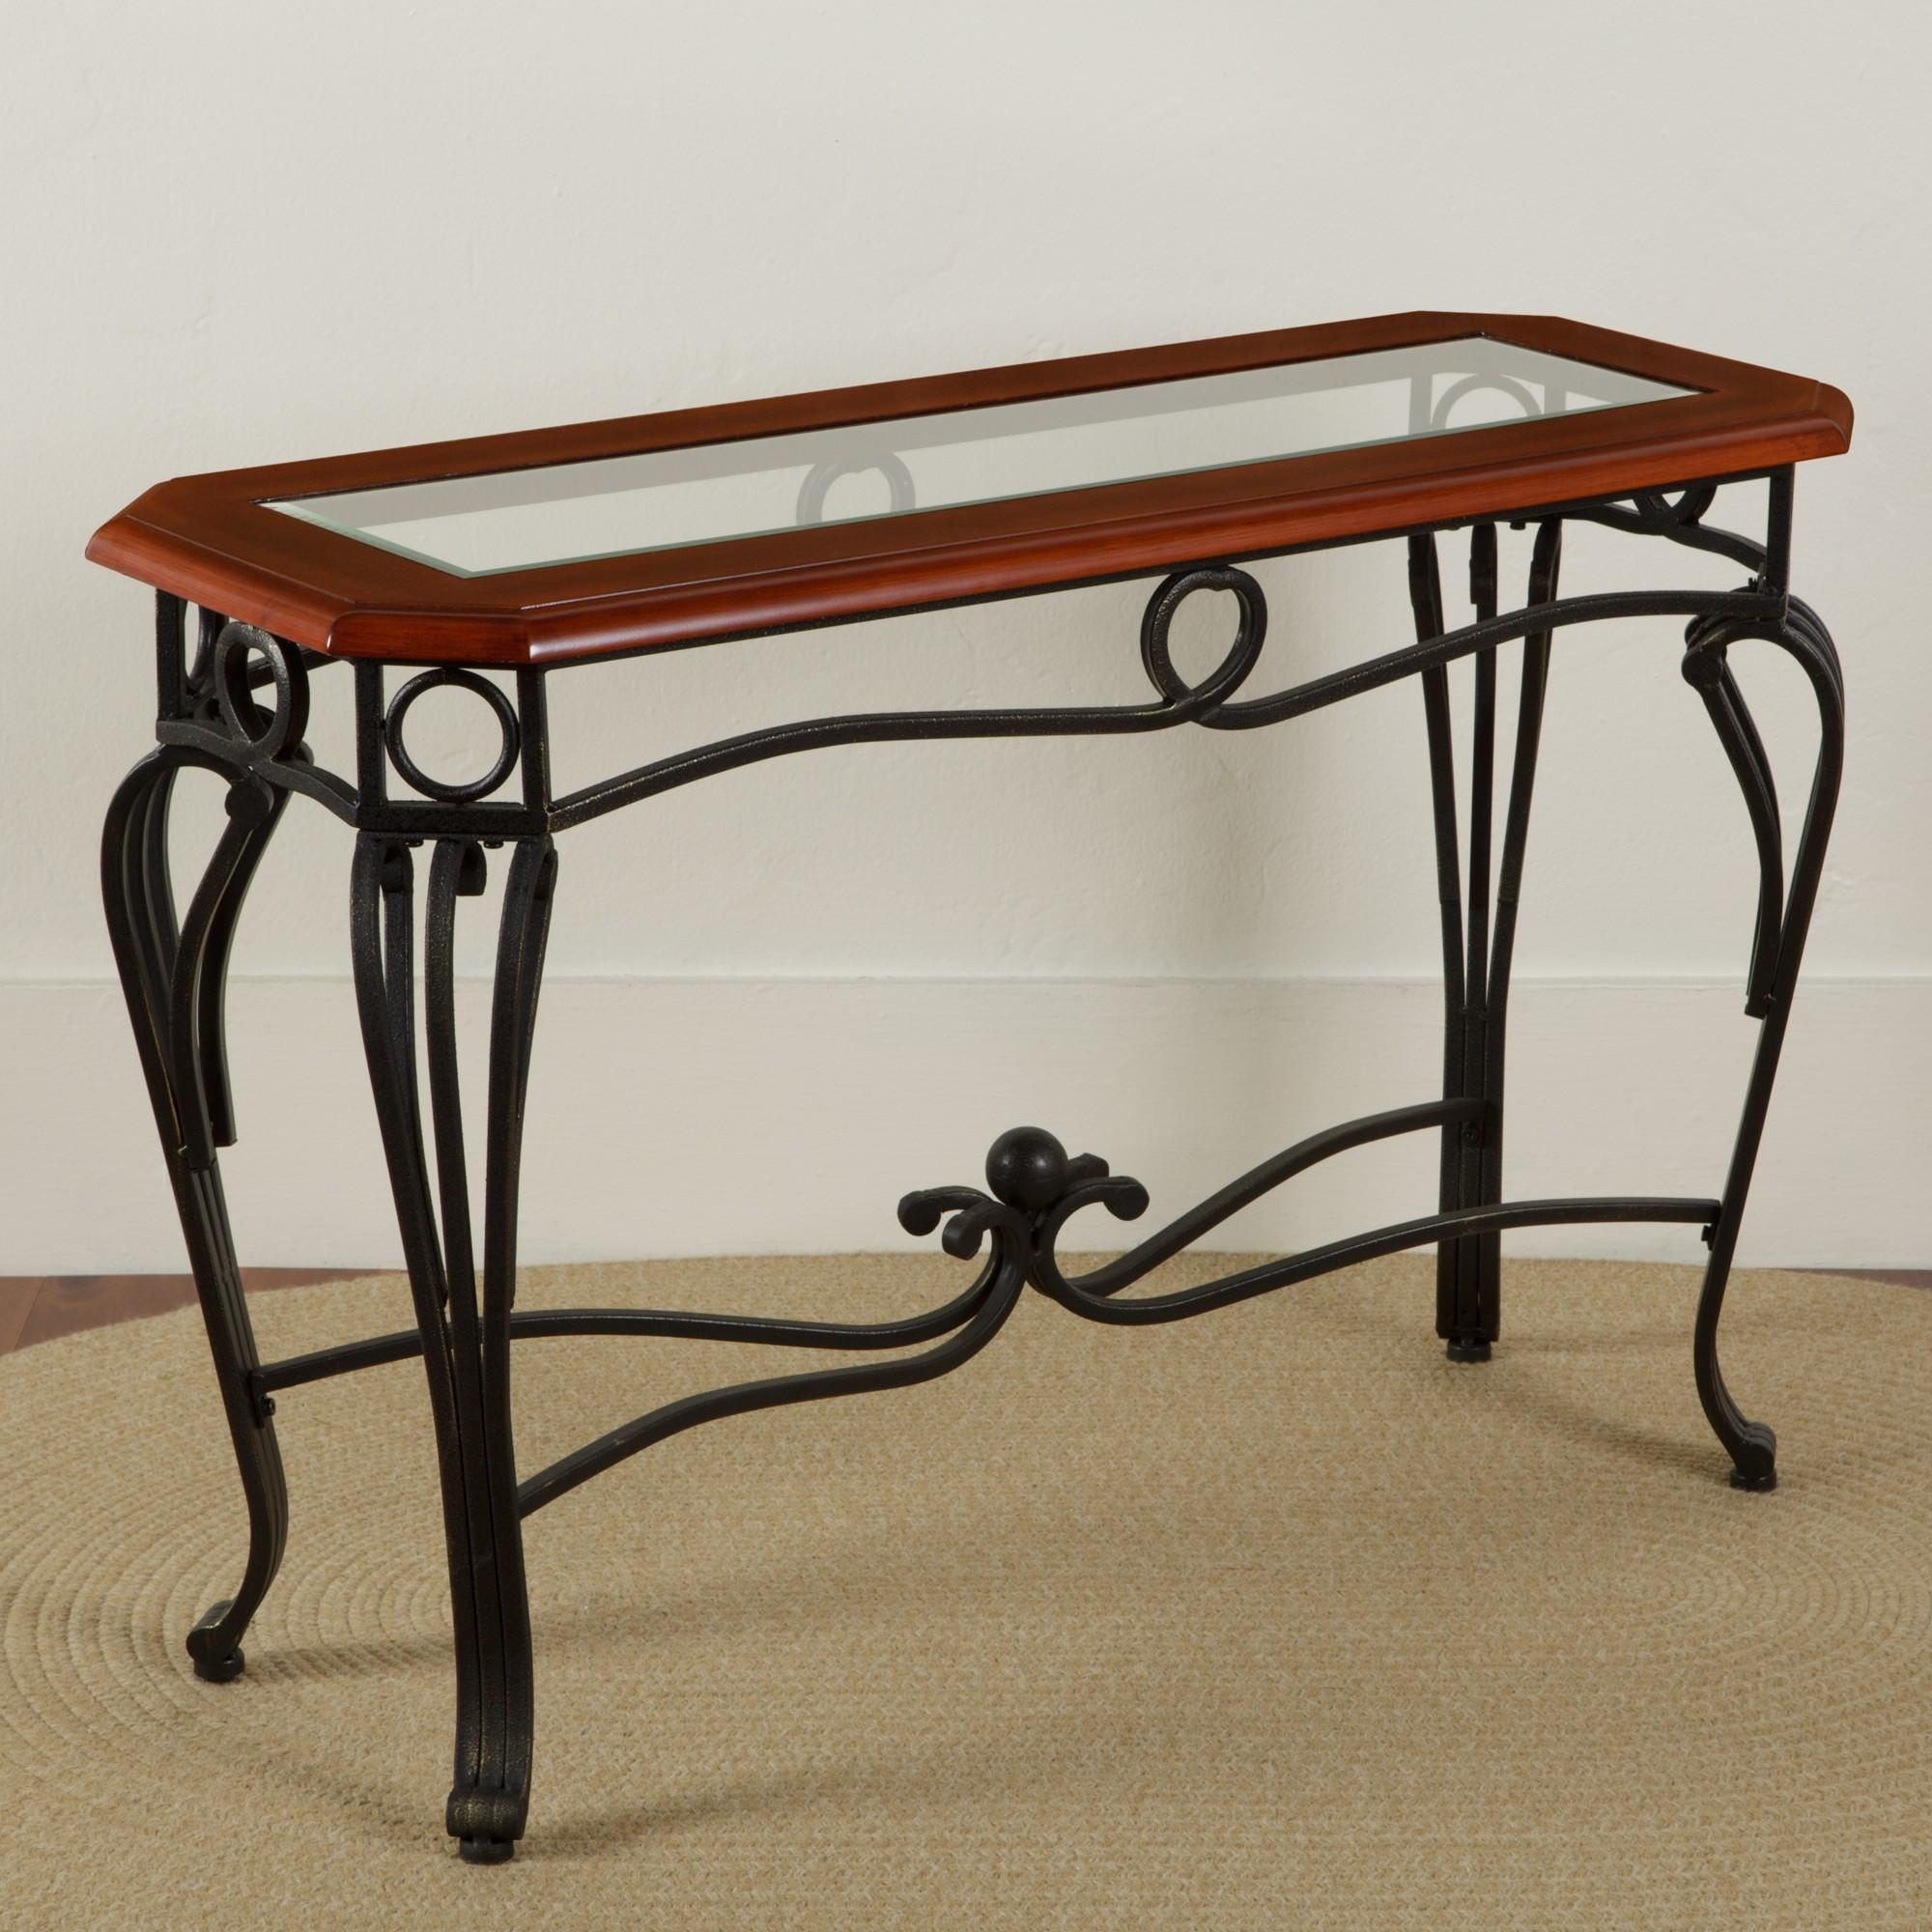 Scrolled Iron Glass Sofa Table | Sturbridge Yankee Workshop For Metal Glass Sofa Tables (View 2 of 22)